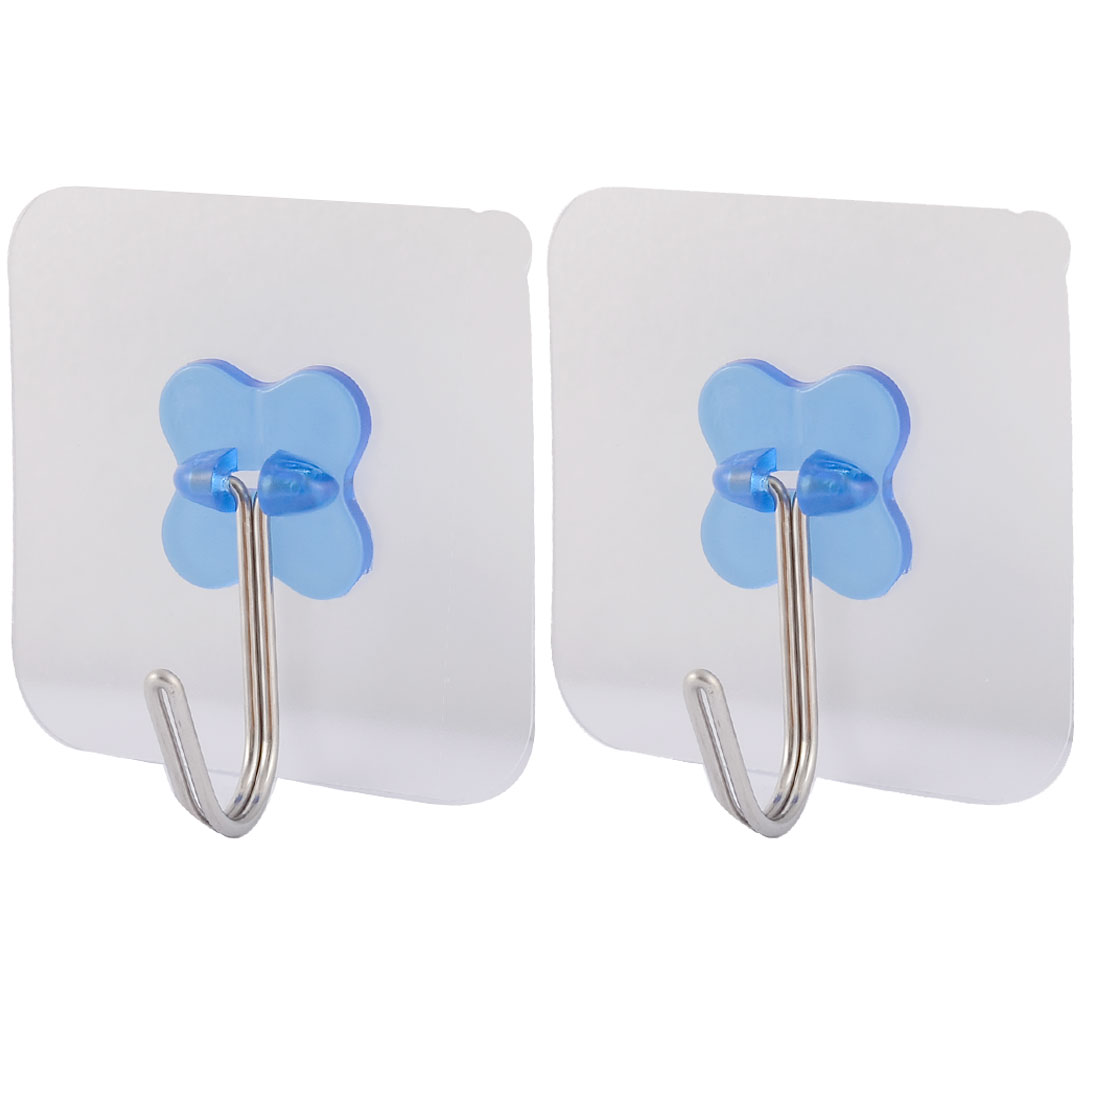 Home Wall Door No Scratch Towel Clothes Hanger Self Adhesive Seamless Hook Blue 2pcs